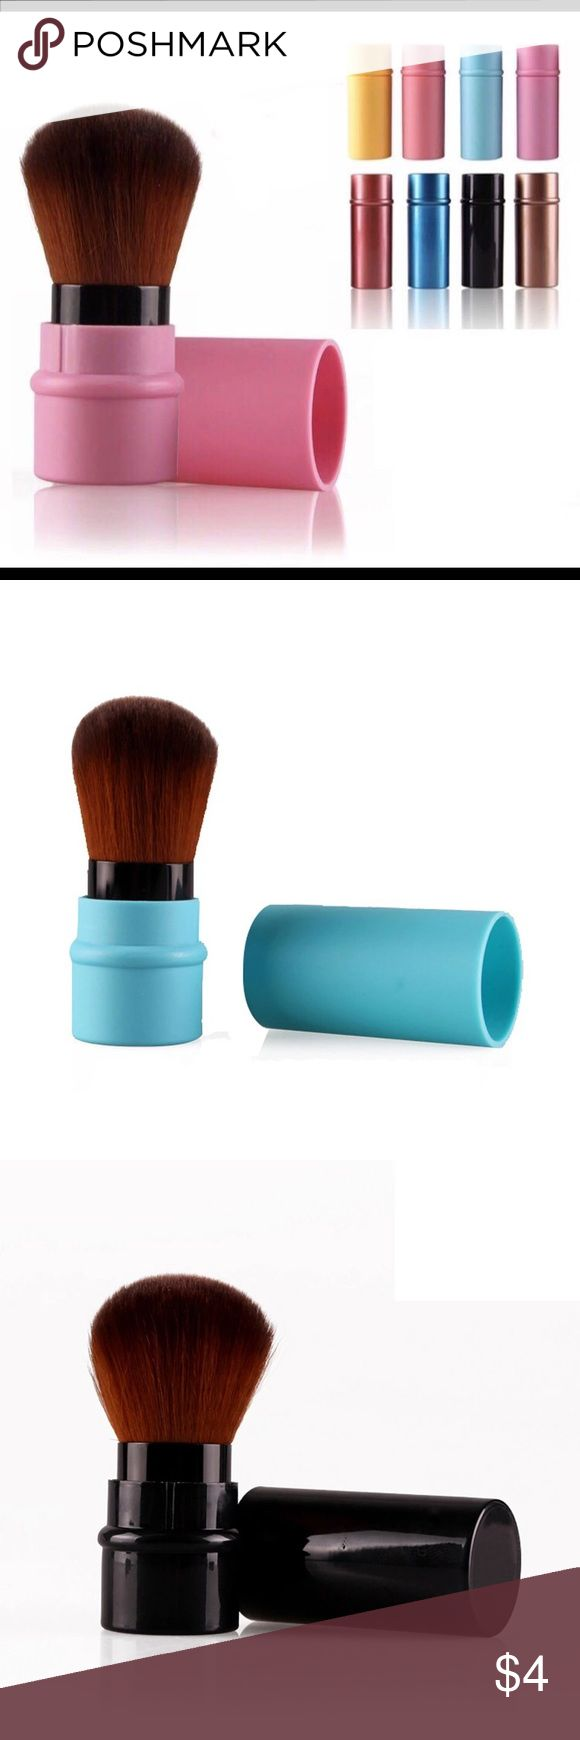 Retractable Cosmetic Brush. Specification: Brand New Color:Black,Blue,Brown,Pink,Red,Sky Blue,Watermelon, Yellow Gender:Women Total Length:8.2cm Hair length:3.7cm Hair width:4cm Material:Synthetic Hair;Plastic Used with:Powder Package: 1 PC Brush Makeup Brushes & Tools